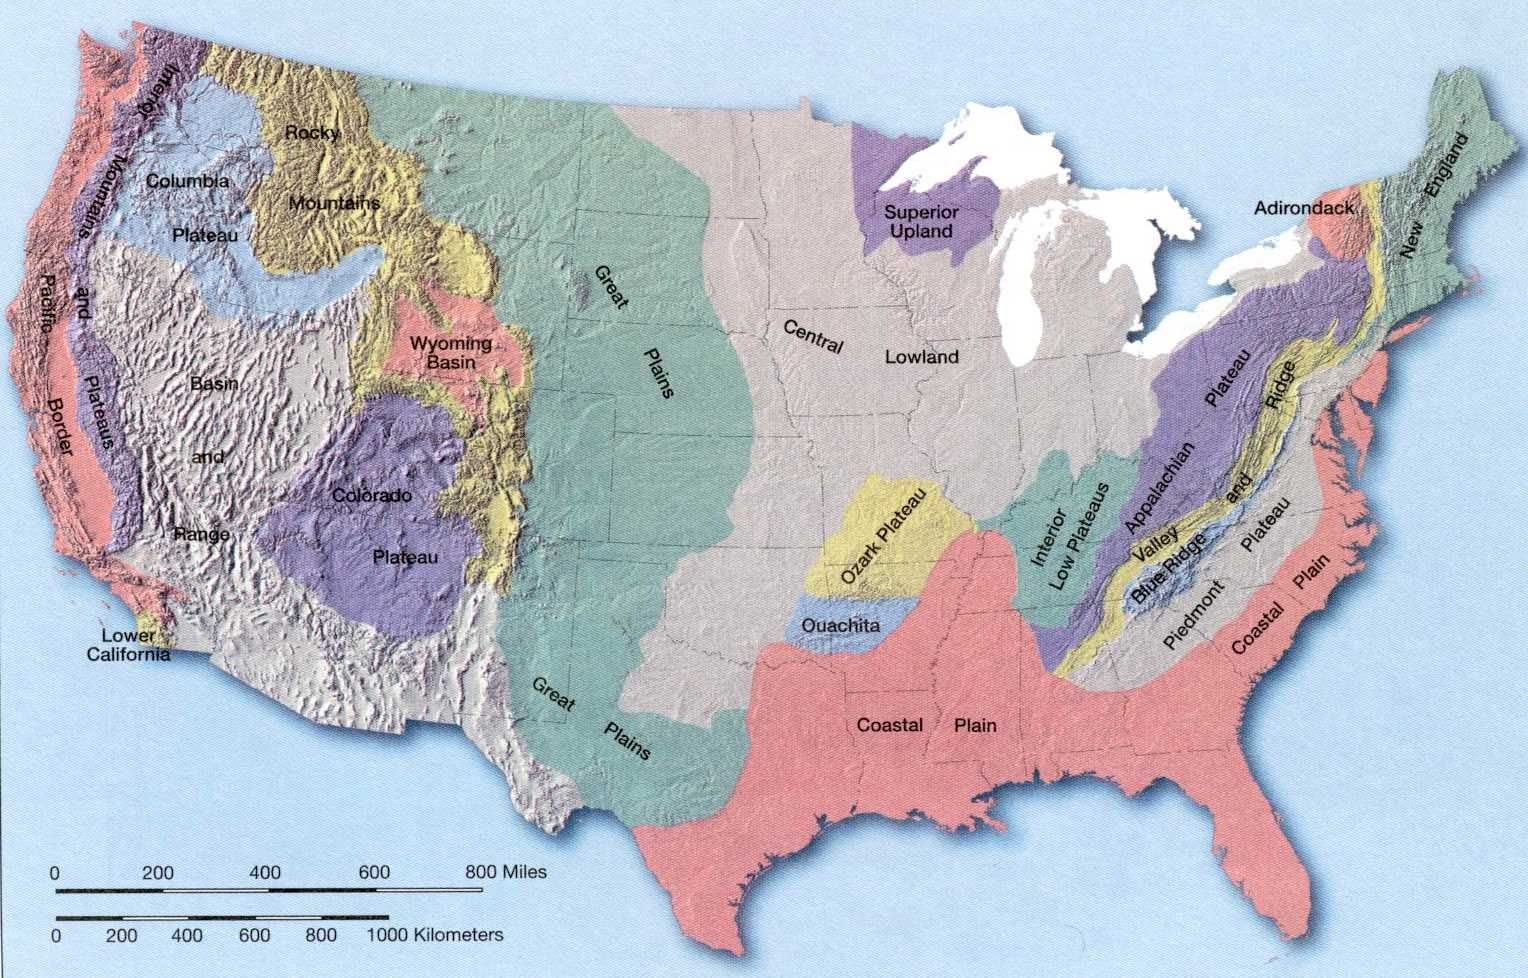 Blank Landform Map Of United States For Kids